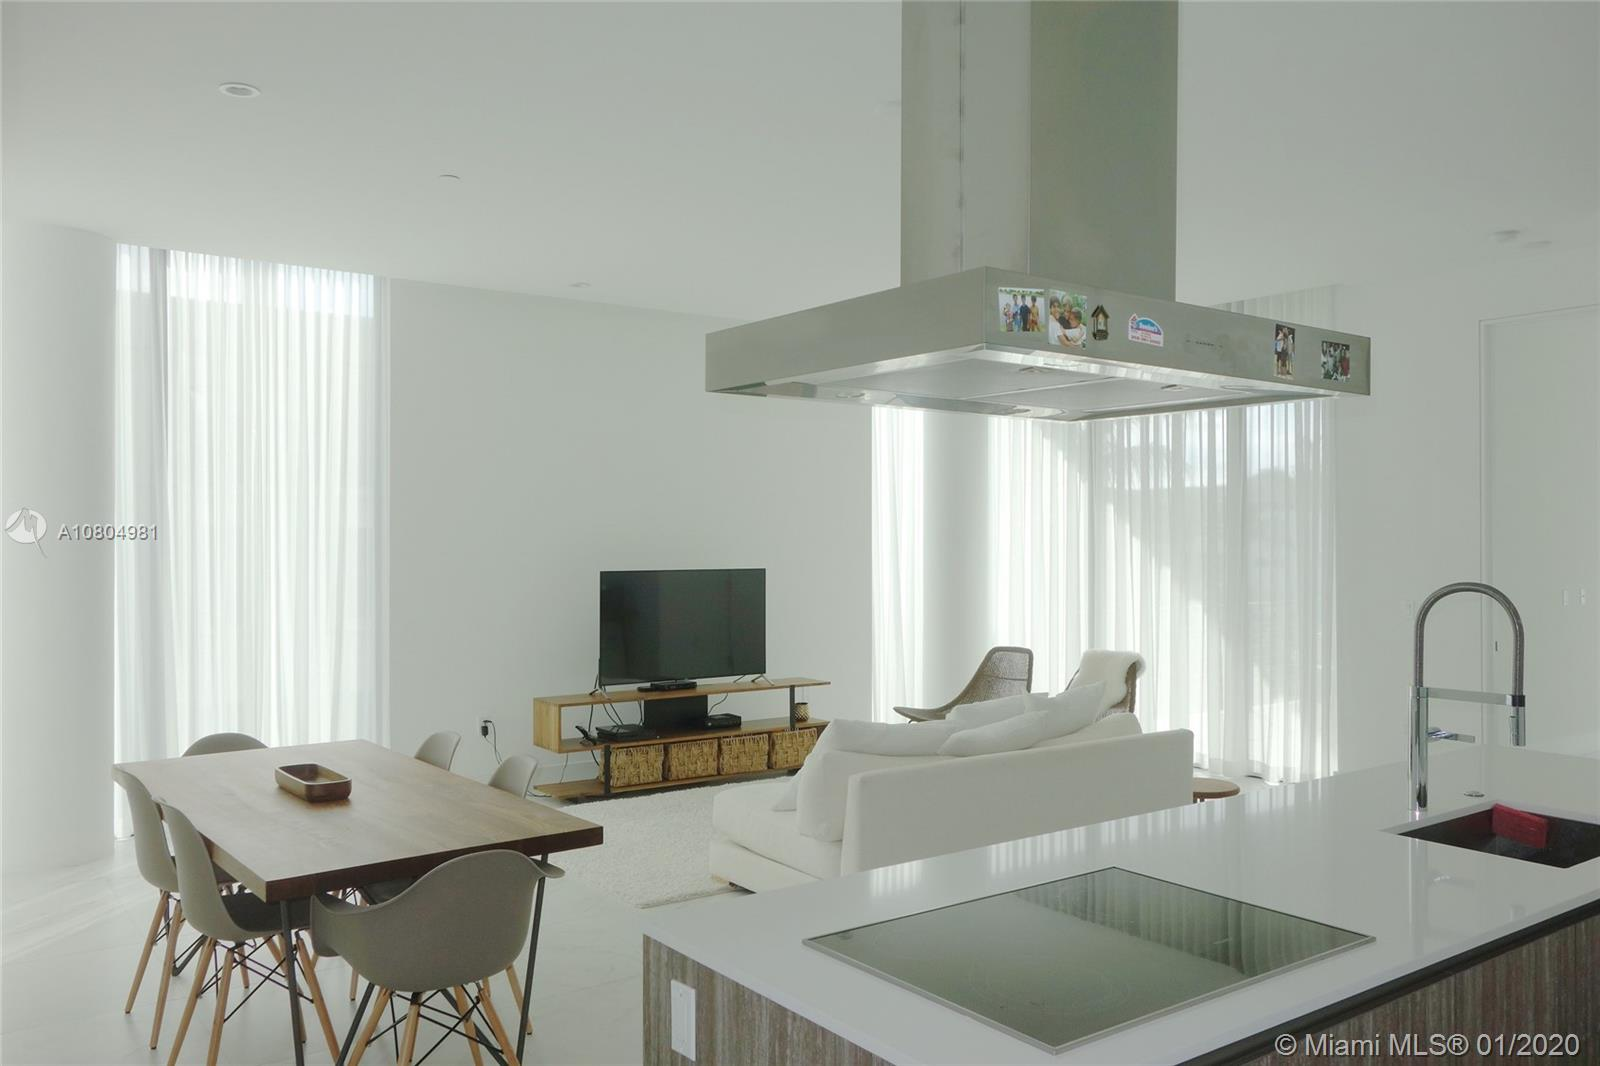 Best price recent construction 3 bedroom apartament in Key Biscayne, in a very exclusive 11 units building, without the hustle and bustle of the large multi-unit buildings in the island. A contemporary new chic urban boutique building in the heart of Key Biscayne. Floor to ceiling impact windows and doors. Large balcony to enjoy the outstanding views of the city.